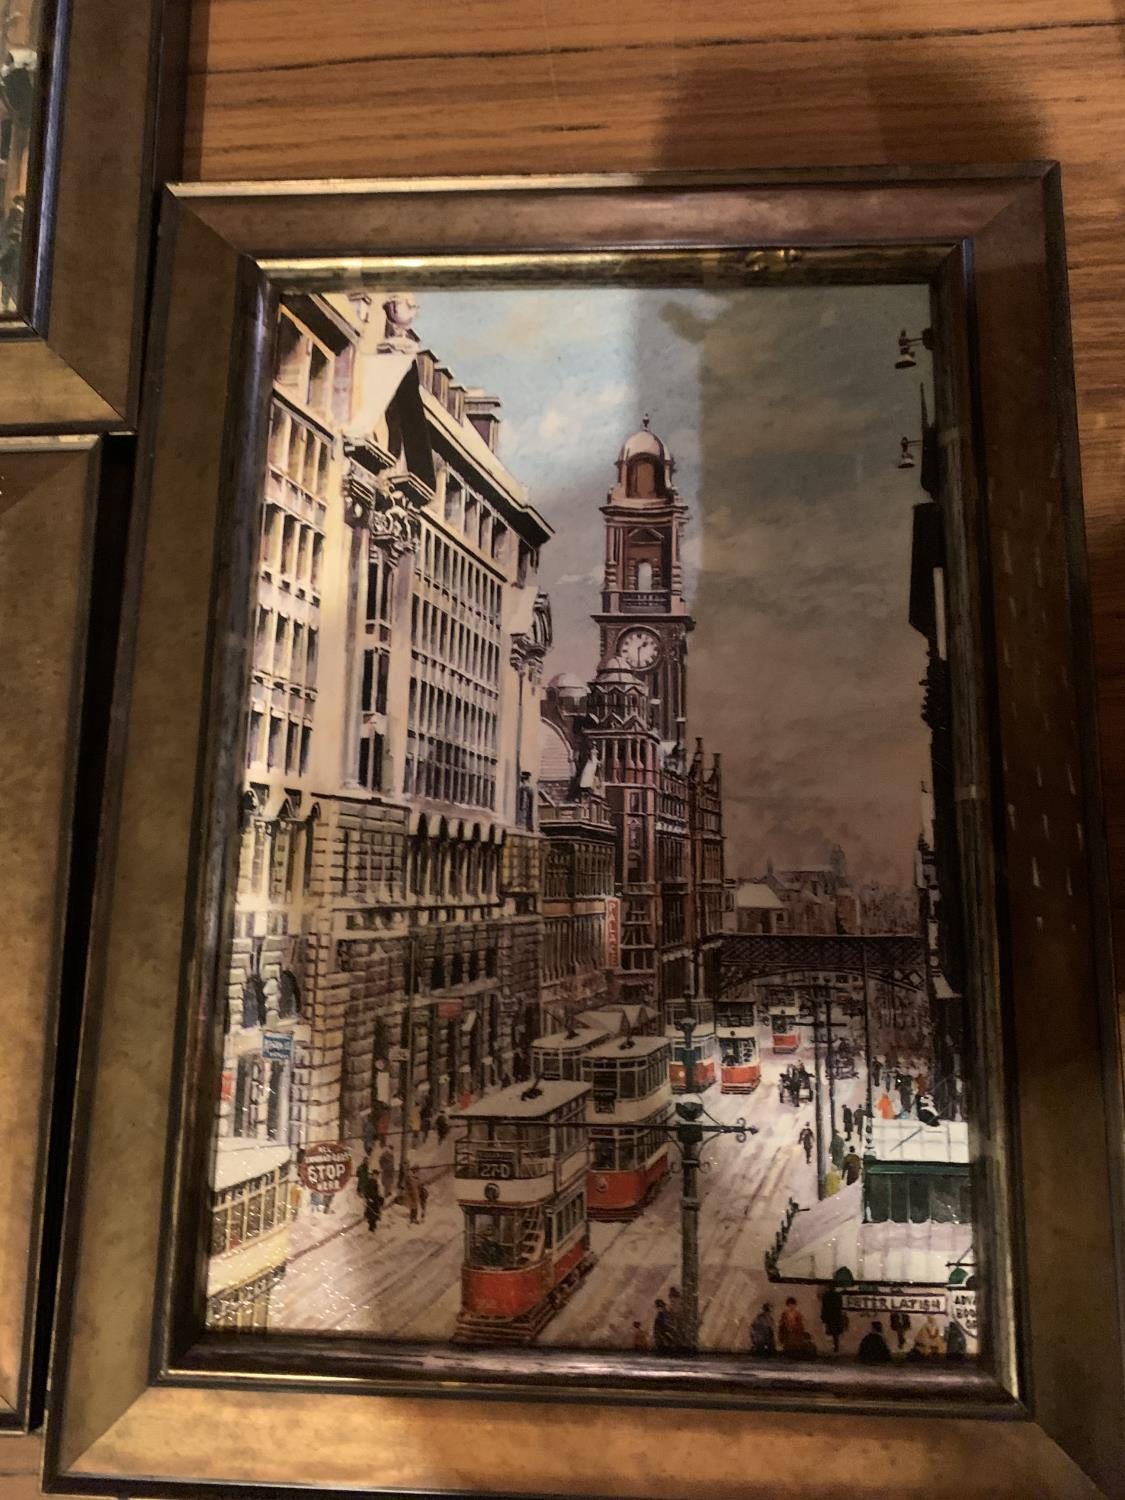 THREE FRAMED PRINTS OF CITY SCENES - Image 8 of 8